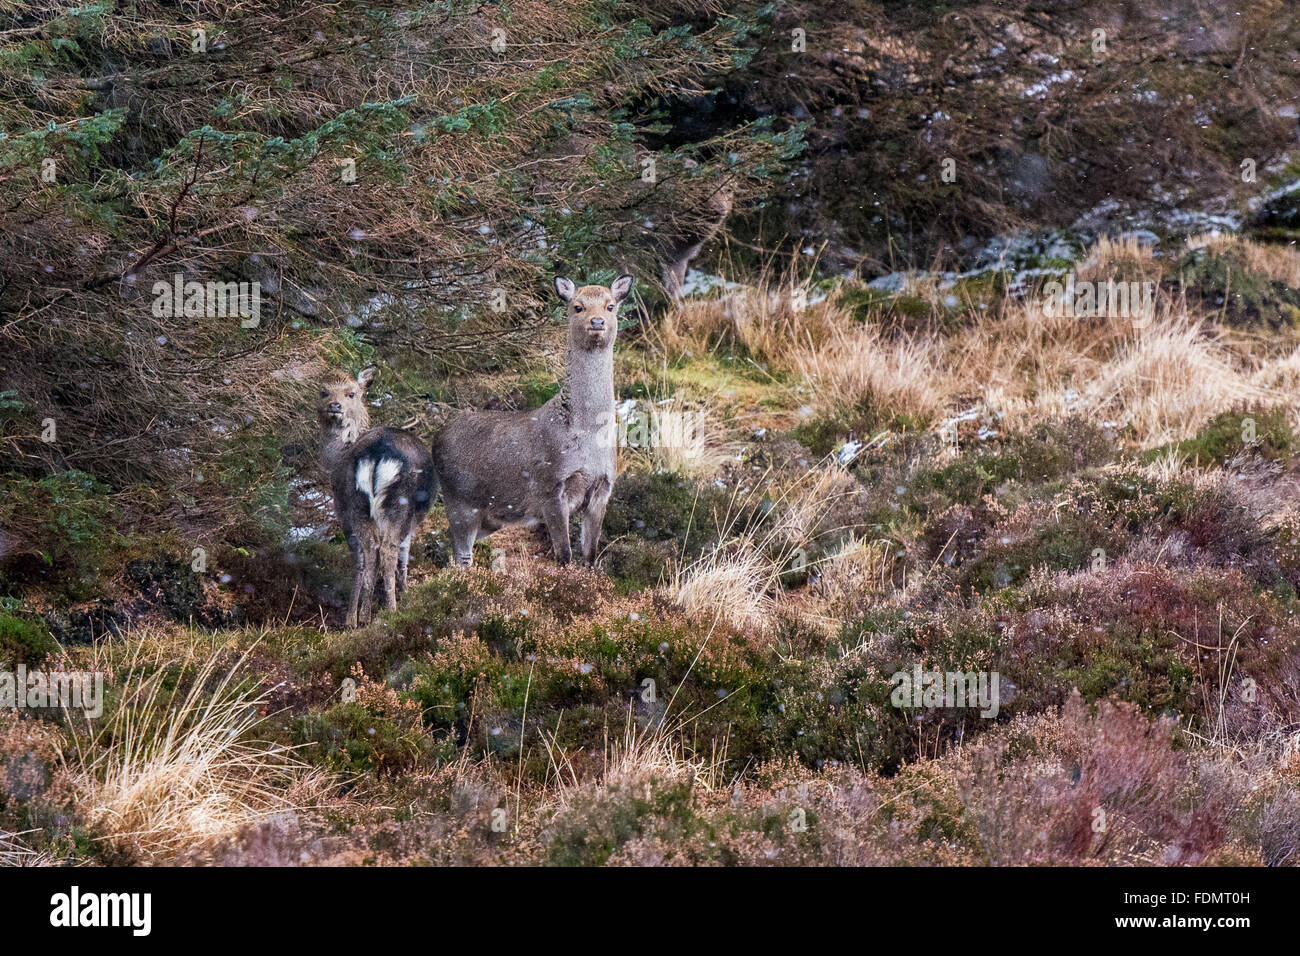 Mother and young deer alert on a heathery hillside with some snow in the wind in Wicklow mountains national park - Stock Image